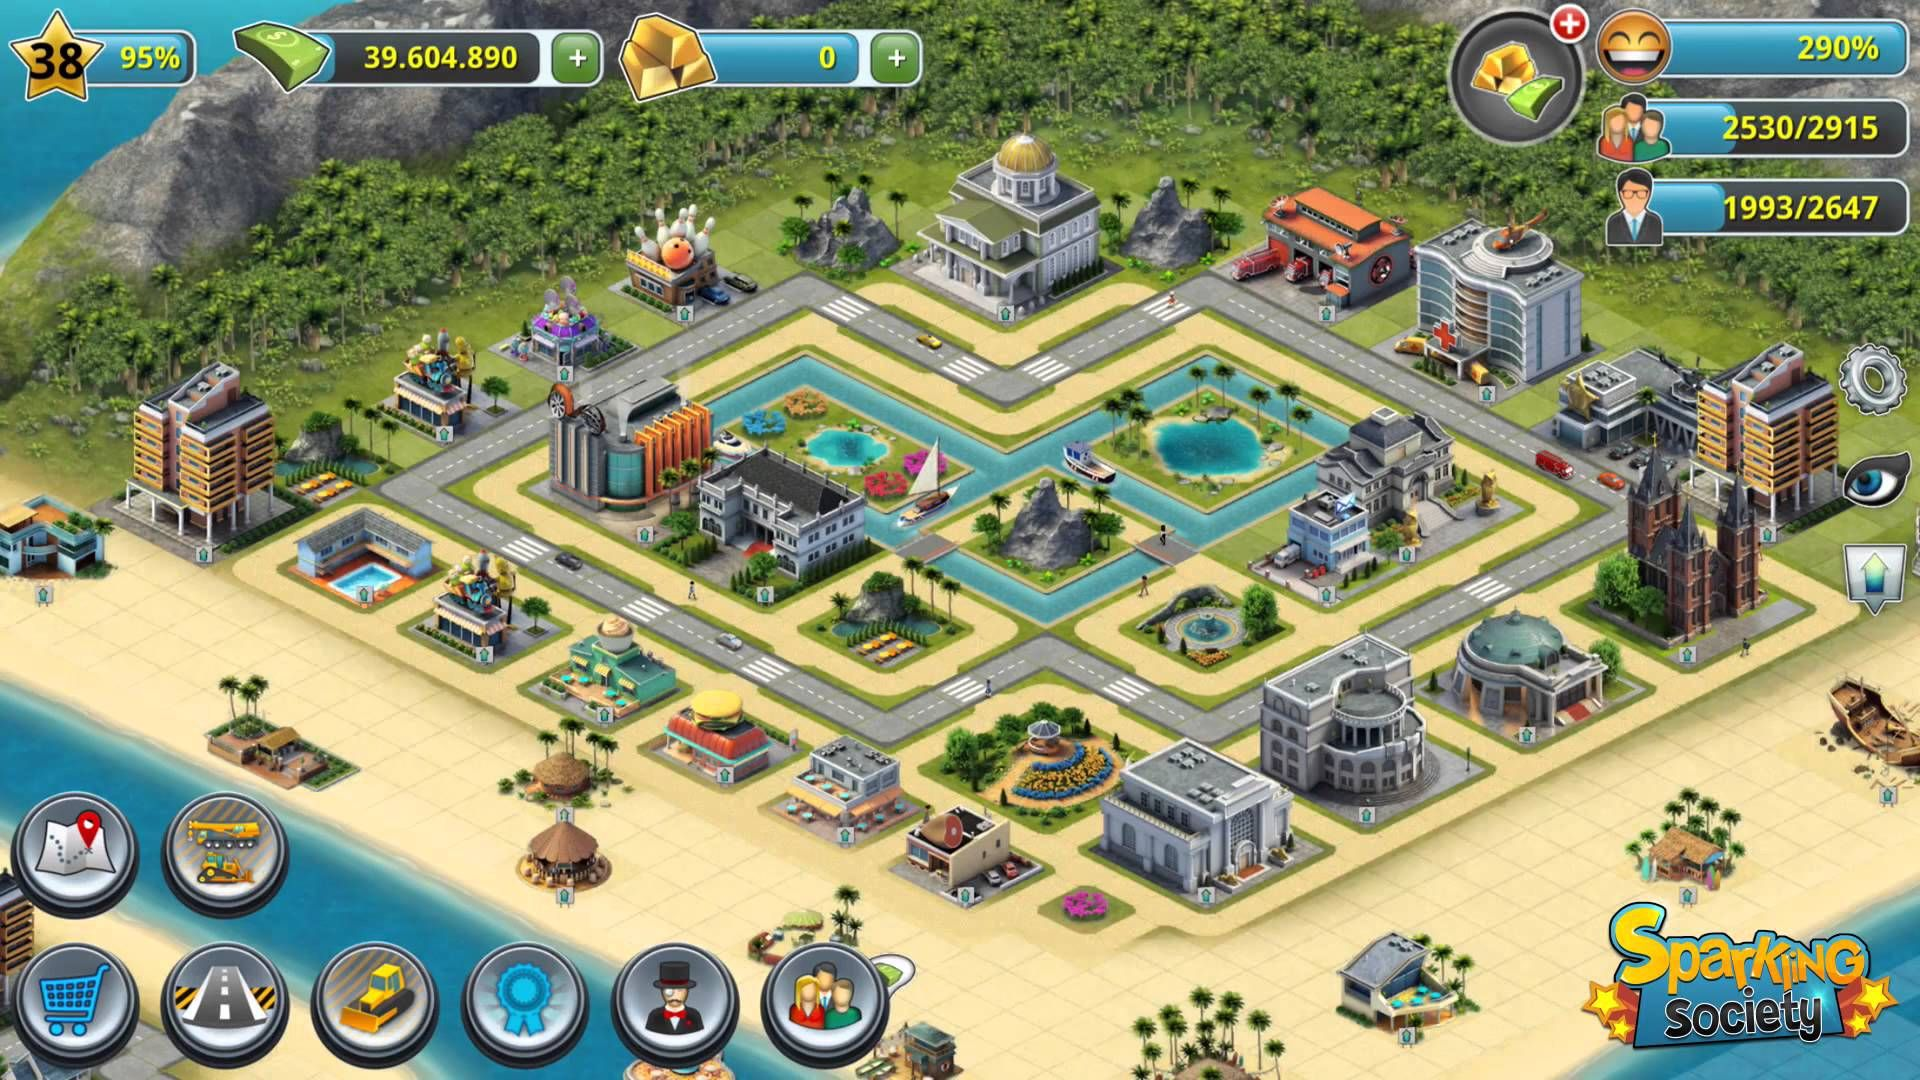 City Island 3 Hack No Survey City Island 3 Is An Video Game Similar With The Sims And The Continuations Of City Island 2 An City Island Cheating Game Cheats